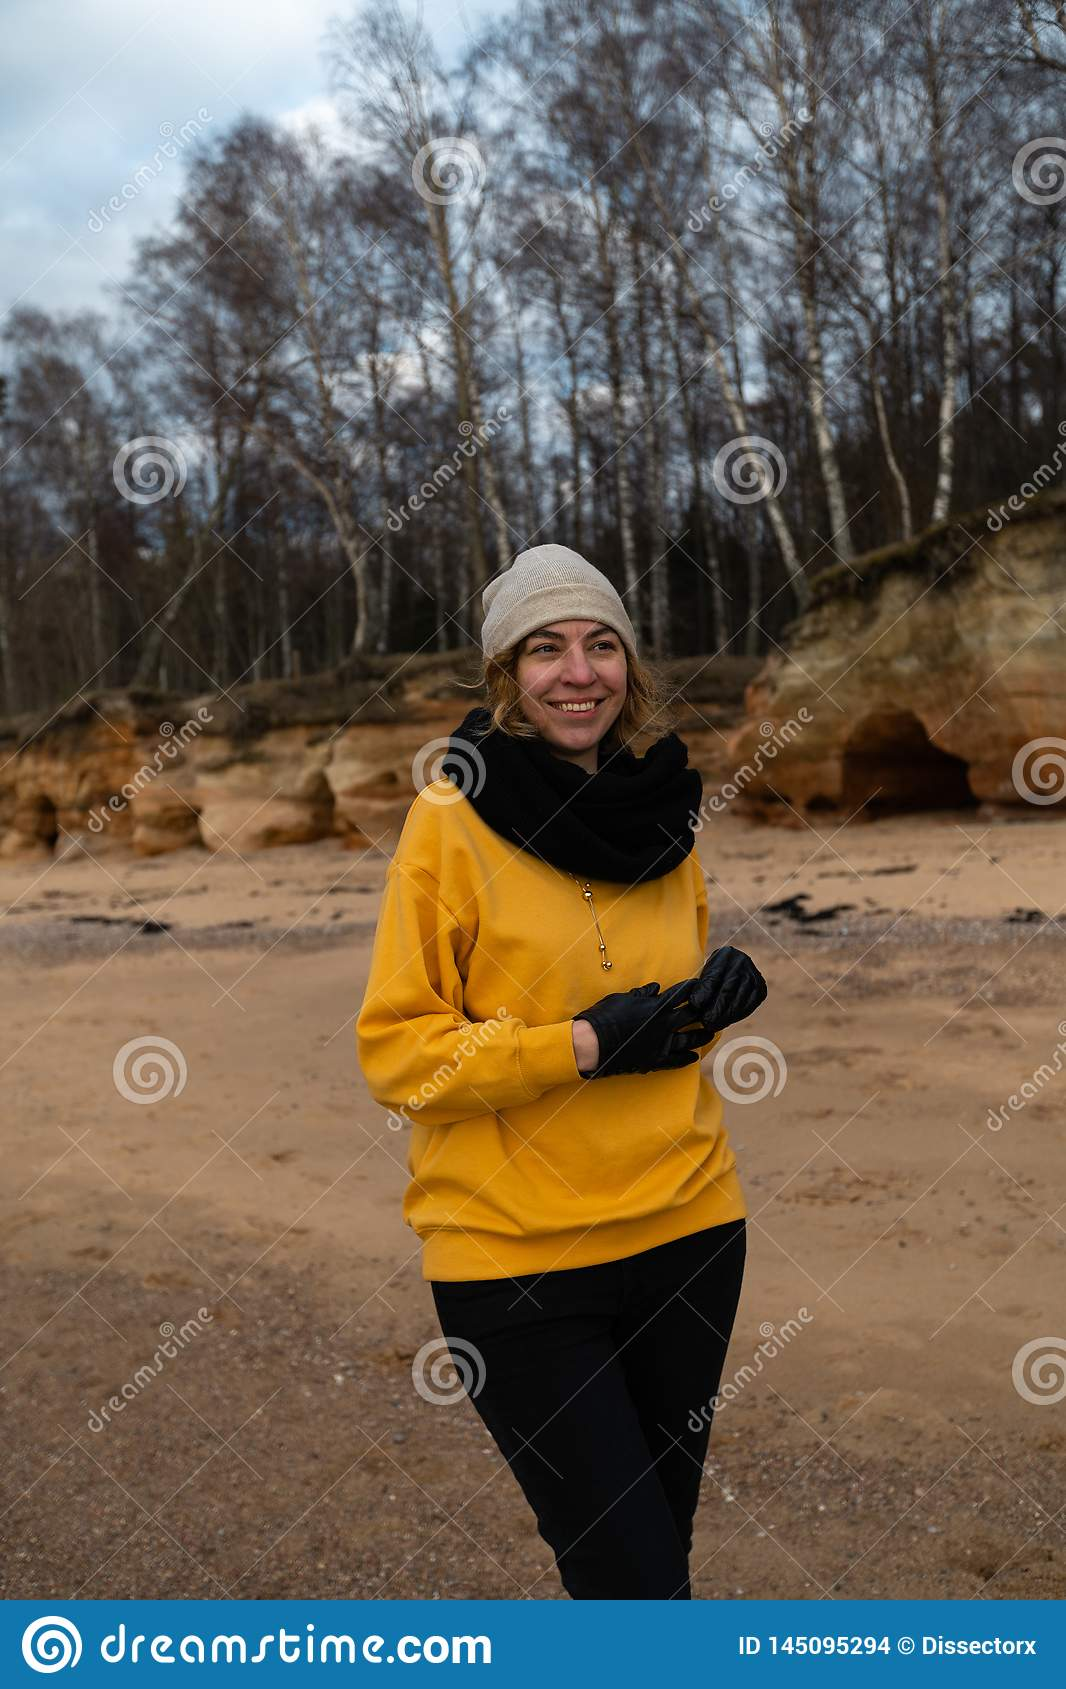 Happy sport and fashion lover enthusiast working out on a beach wearing bright yellow sweater and black gloves and a cap